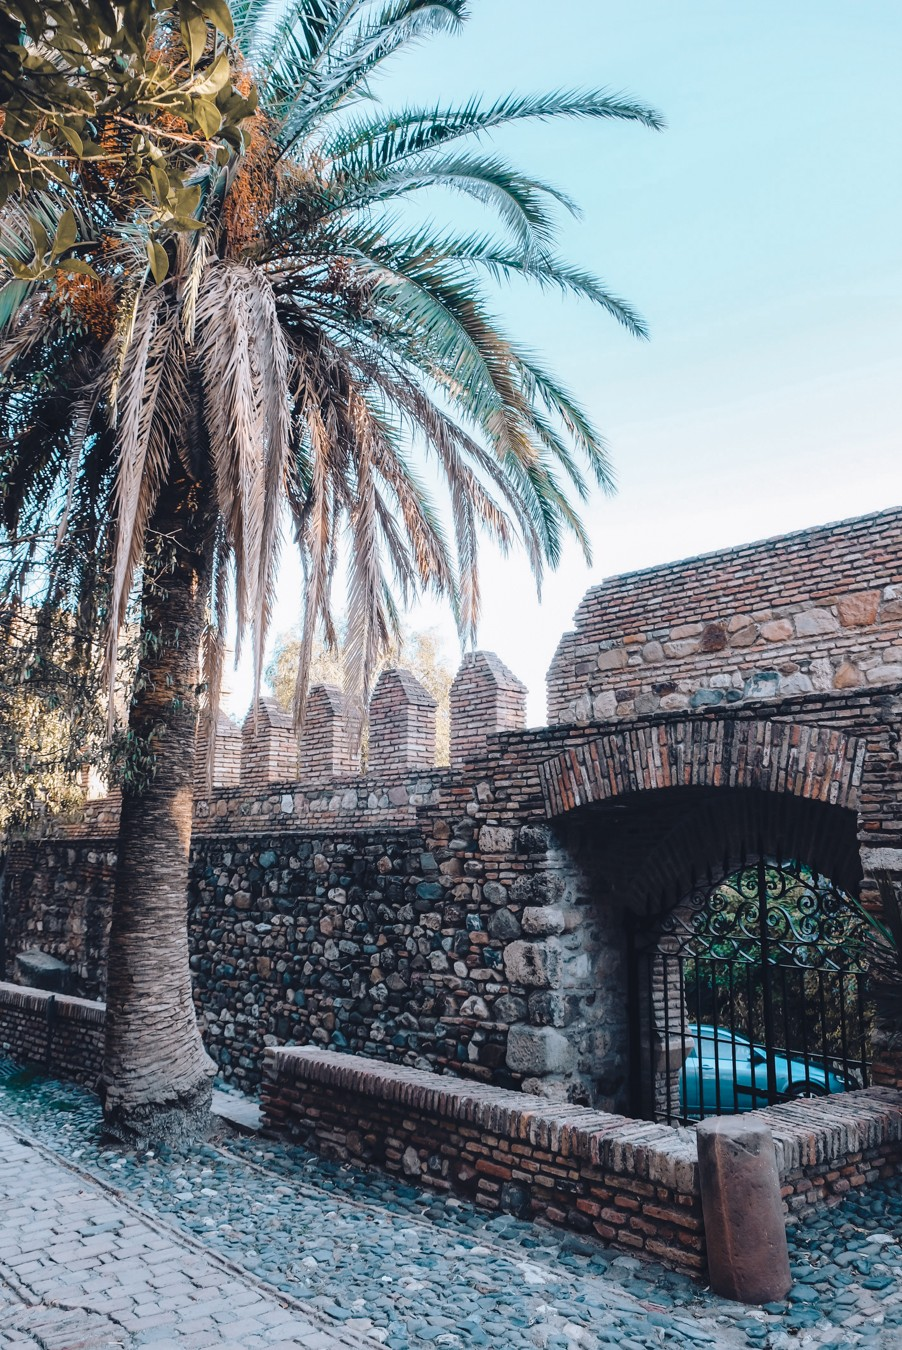 Inside of the Alcazaba fortress in Malaga, Spain.